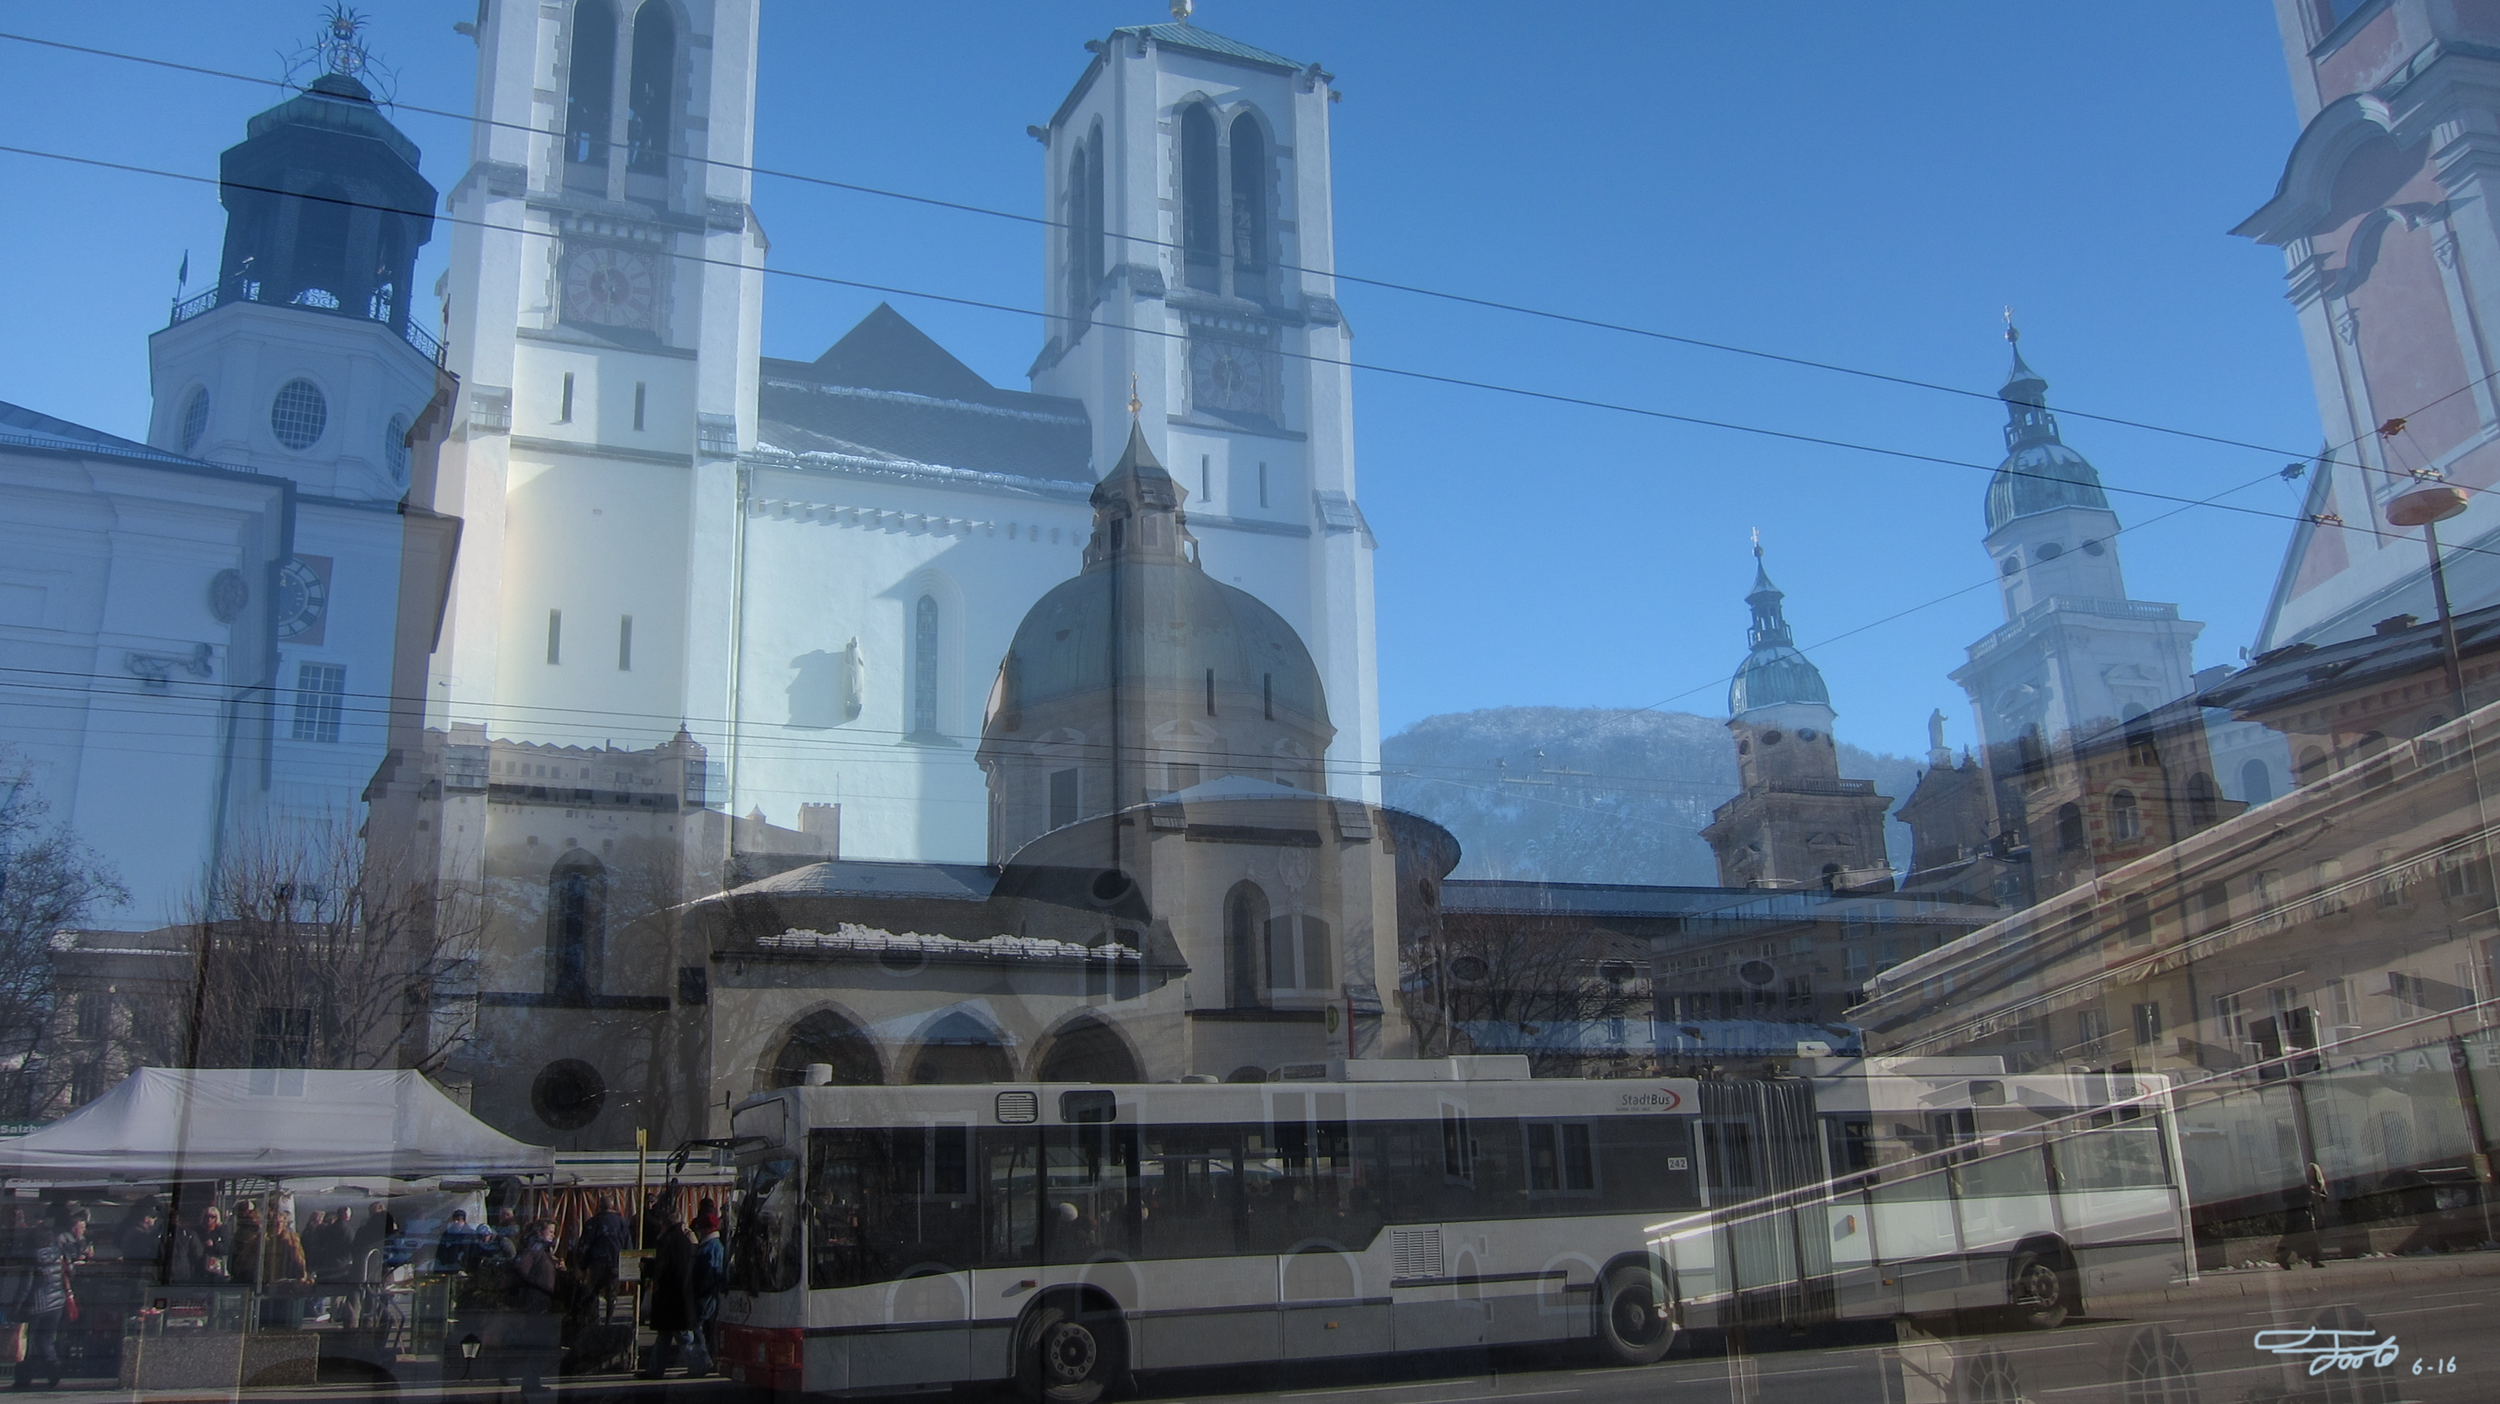 """""""  Kirche St. Andra  ."""" - Photo Overlay. Salzburg. 2016.    """"Kirche St. Andra is a rather modern church by Austrian standards, but it's still an interesting structure on the Mirabellplatz. I find that the trolleybus serves as a nice contrast, especially with the wires creating a flow. The farmers market is in full swing on the left and the mountains can be seen in the background."""""""